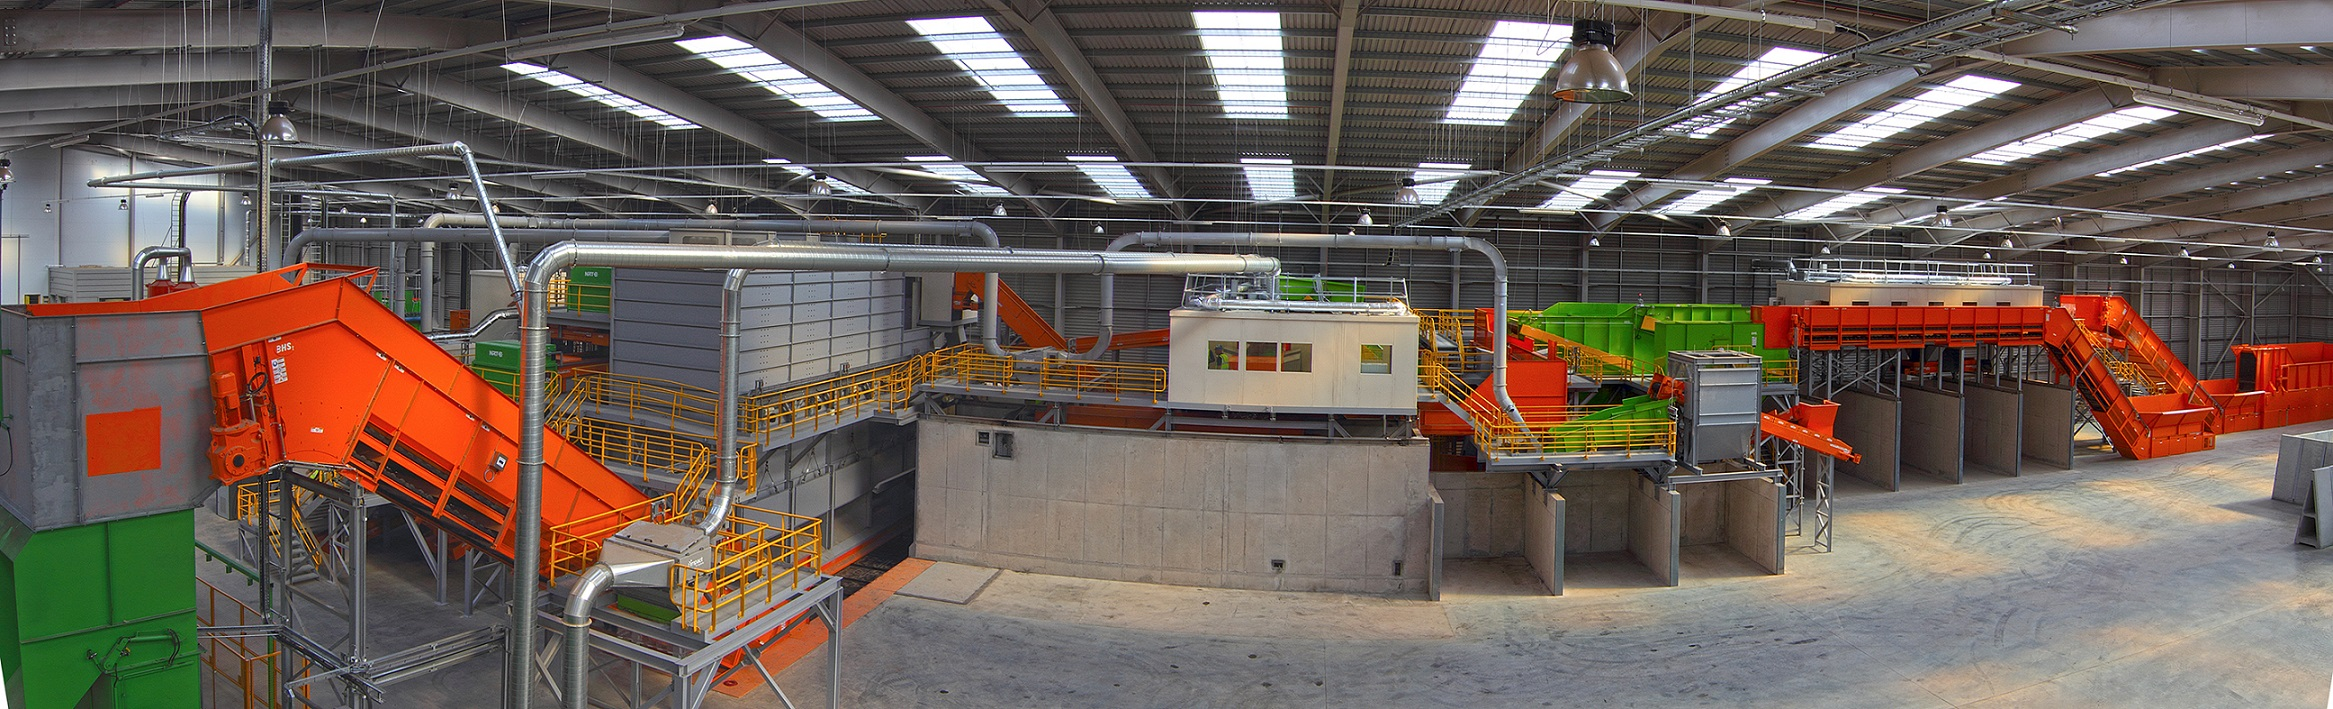 Industrial Machinery Installation by EES Ltd : Single Stream Recycling Plant Installation